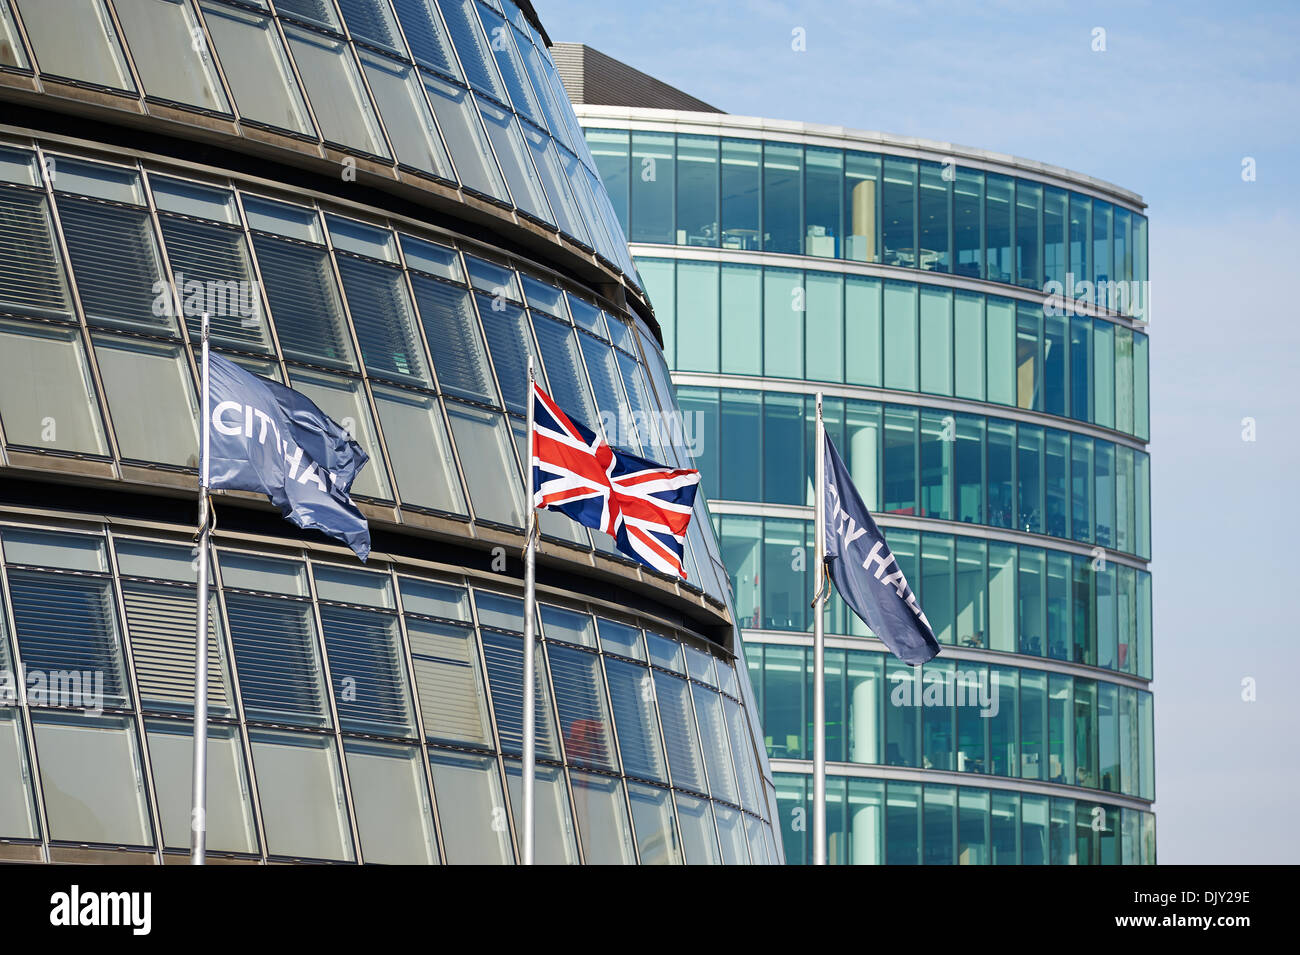 Mayor of london, City Hall and flags - Stock Image